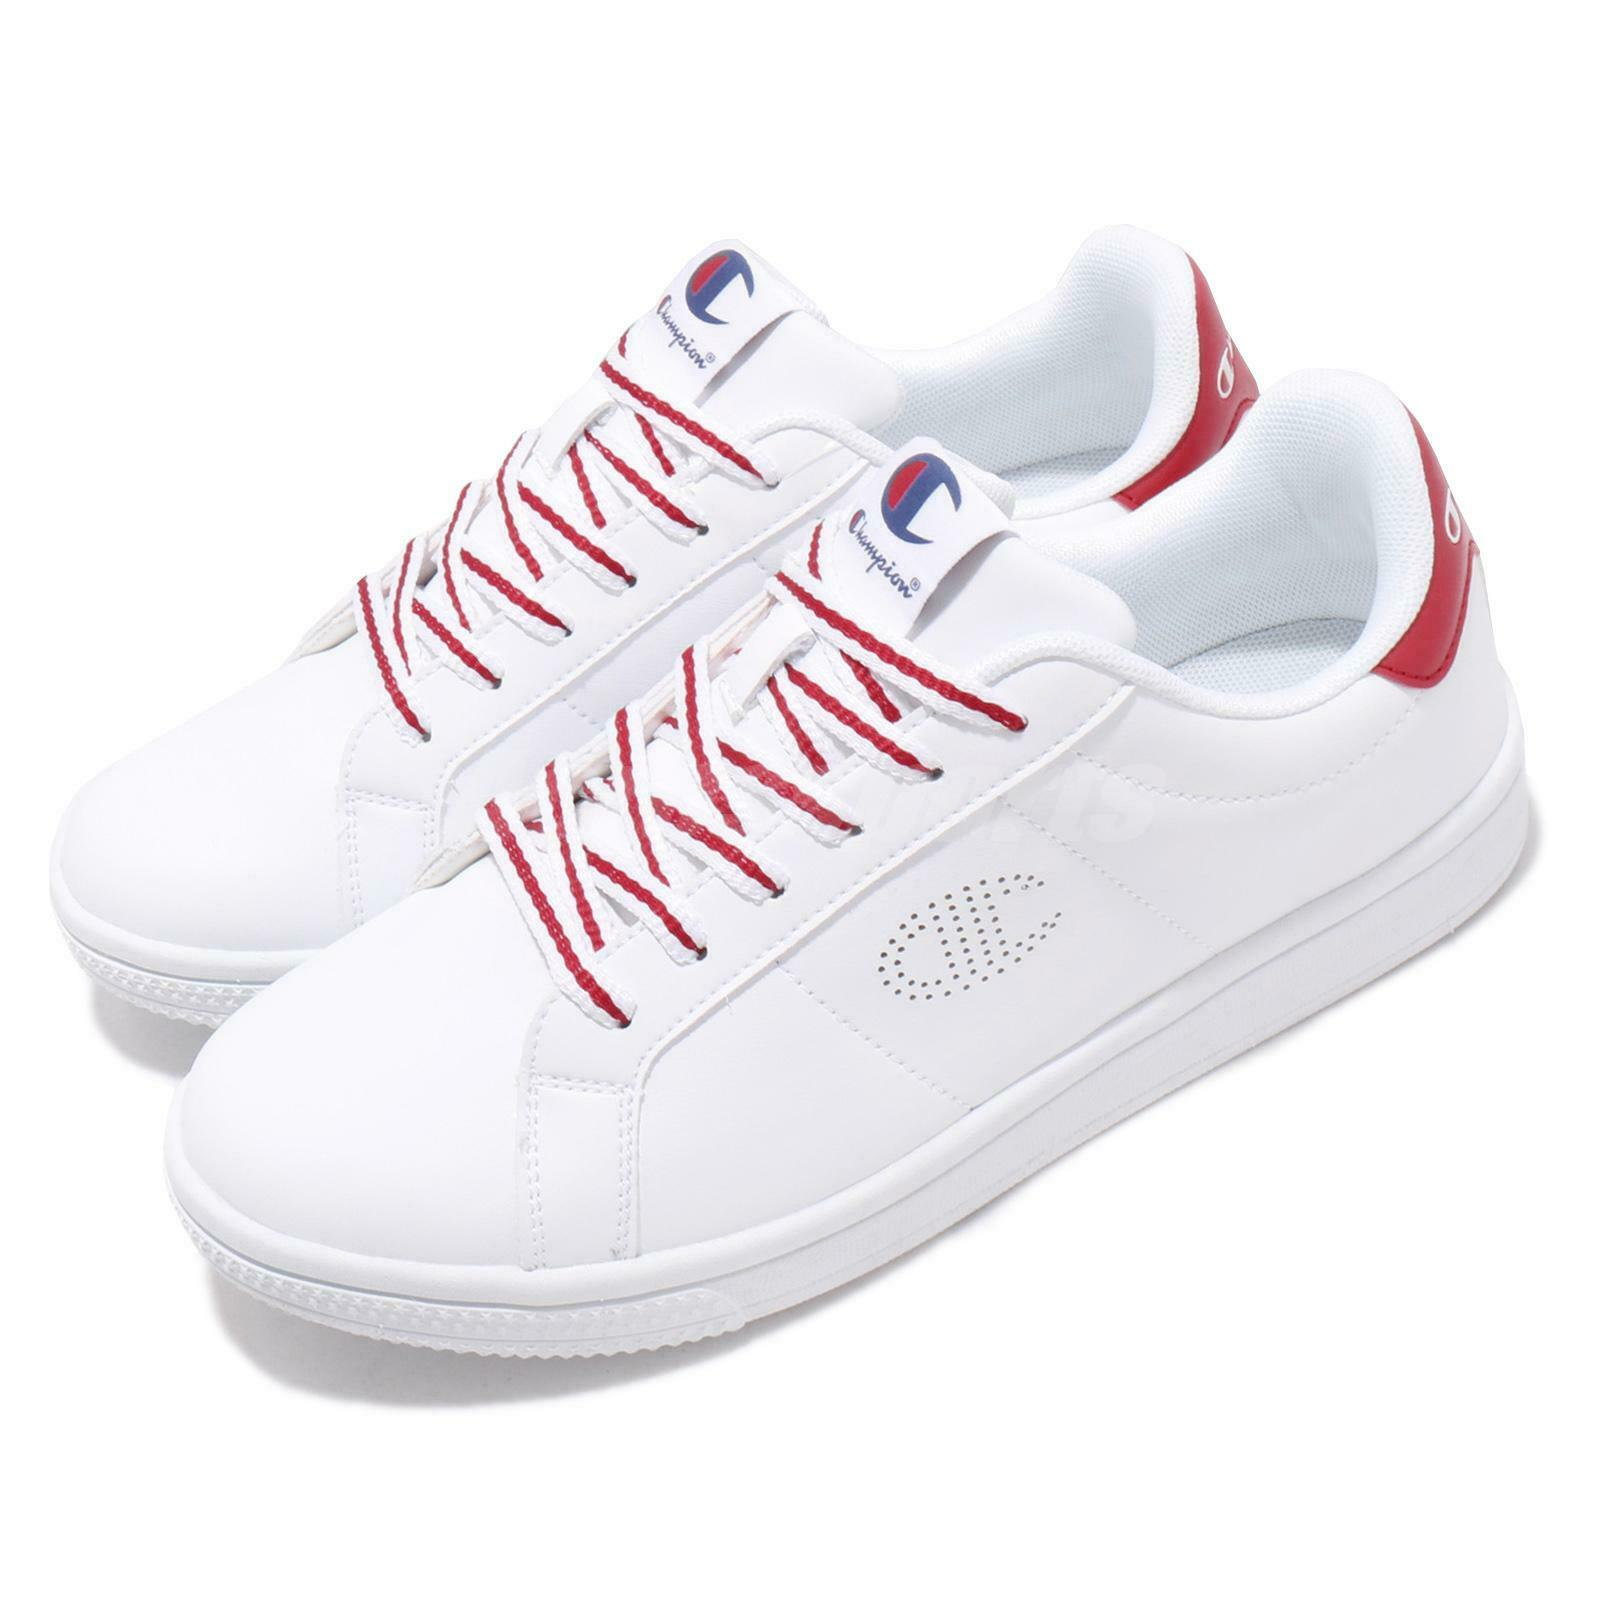 Champion CC Tennis II blanco rojo Men Classic Casual zapatos zapatillas 84-1210104